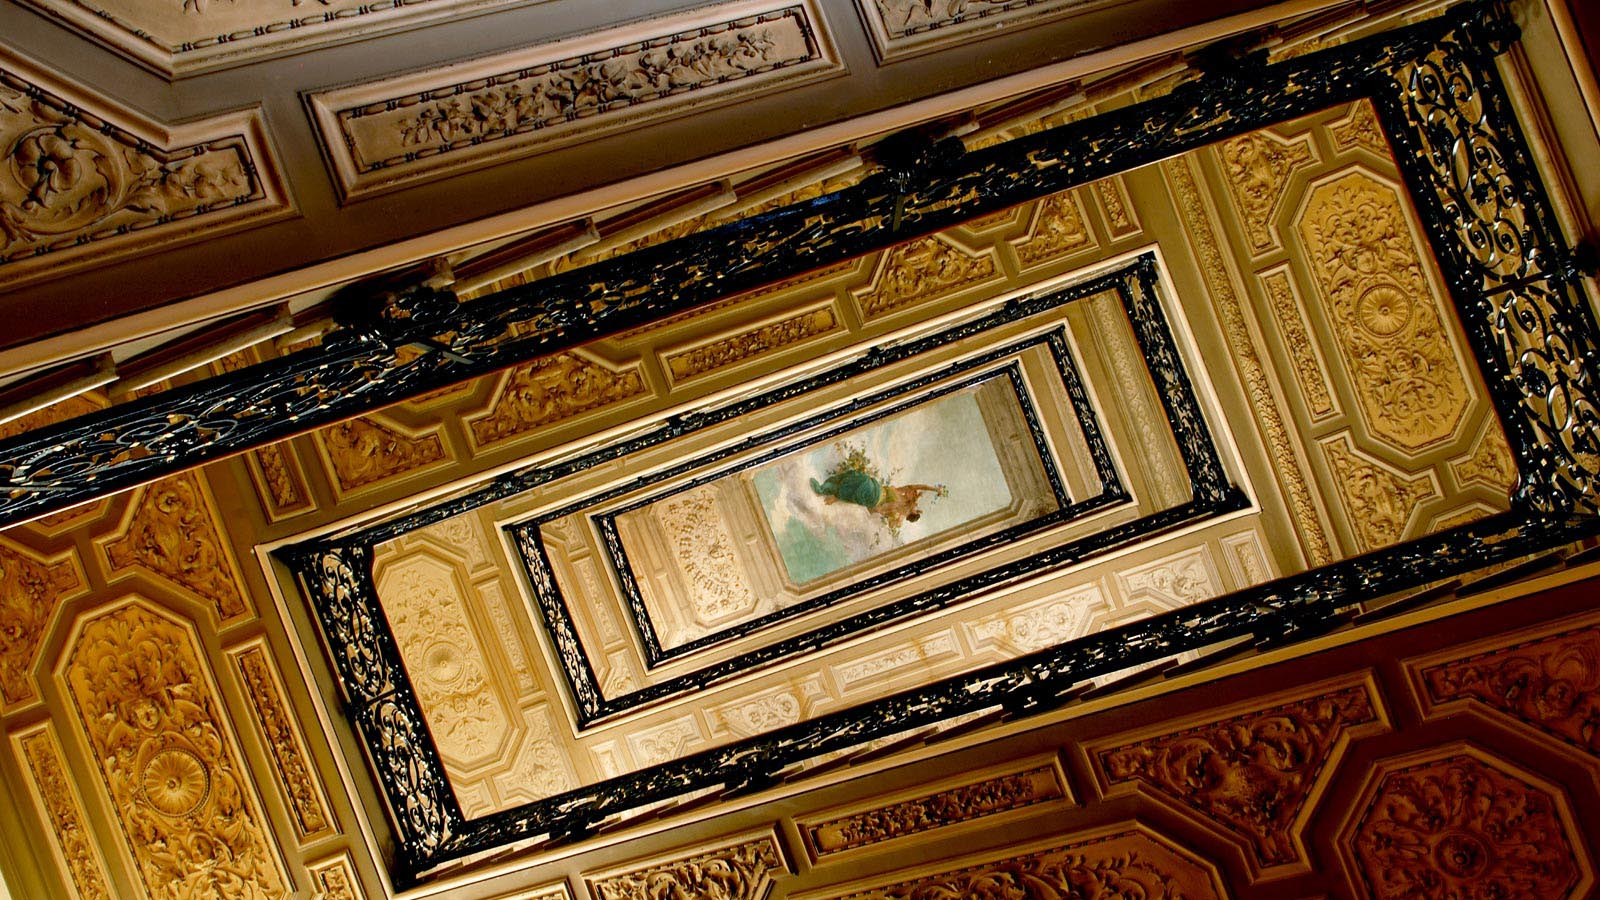 The St. Regis staircase fresco